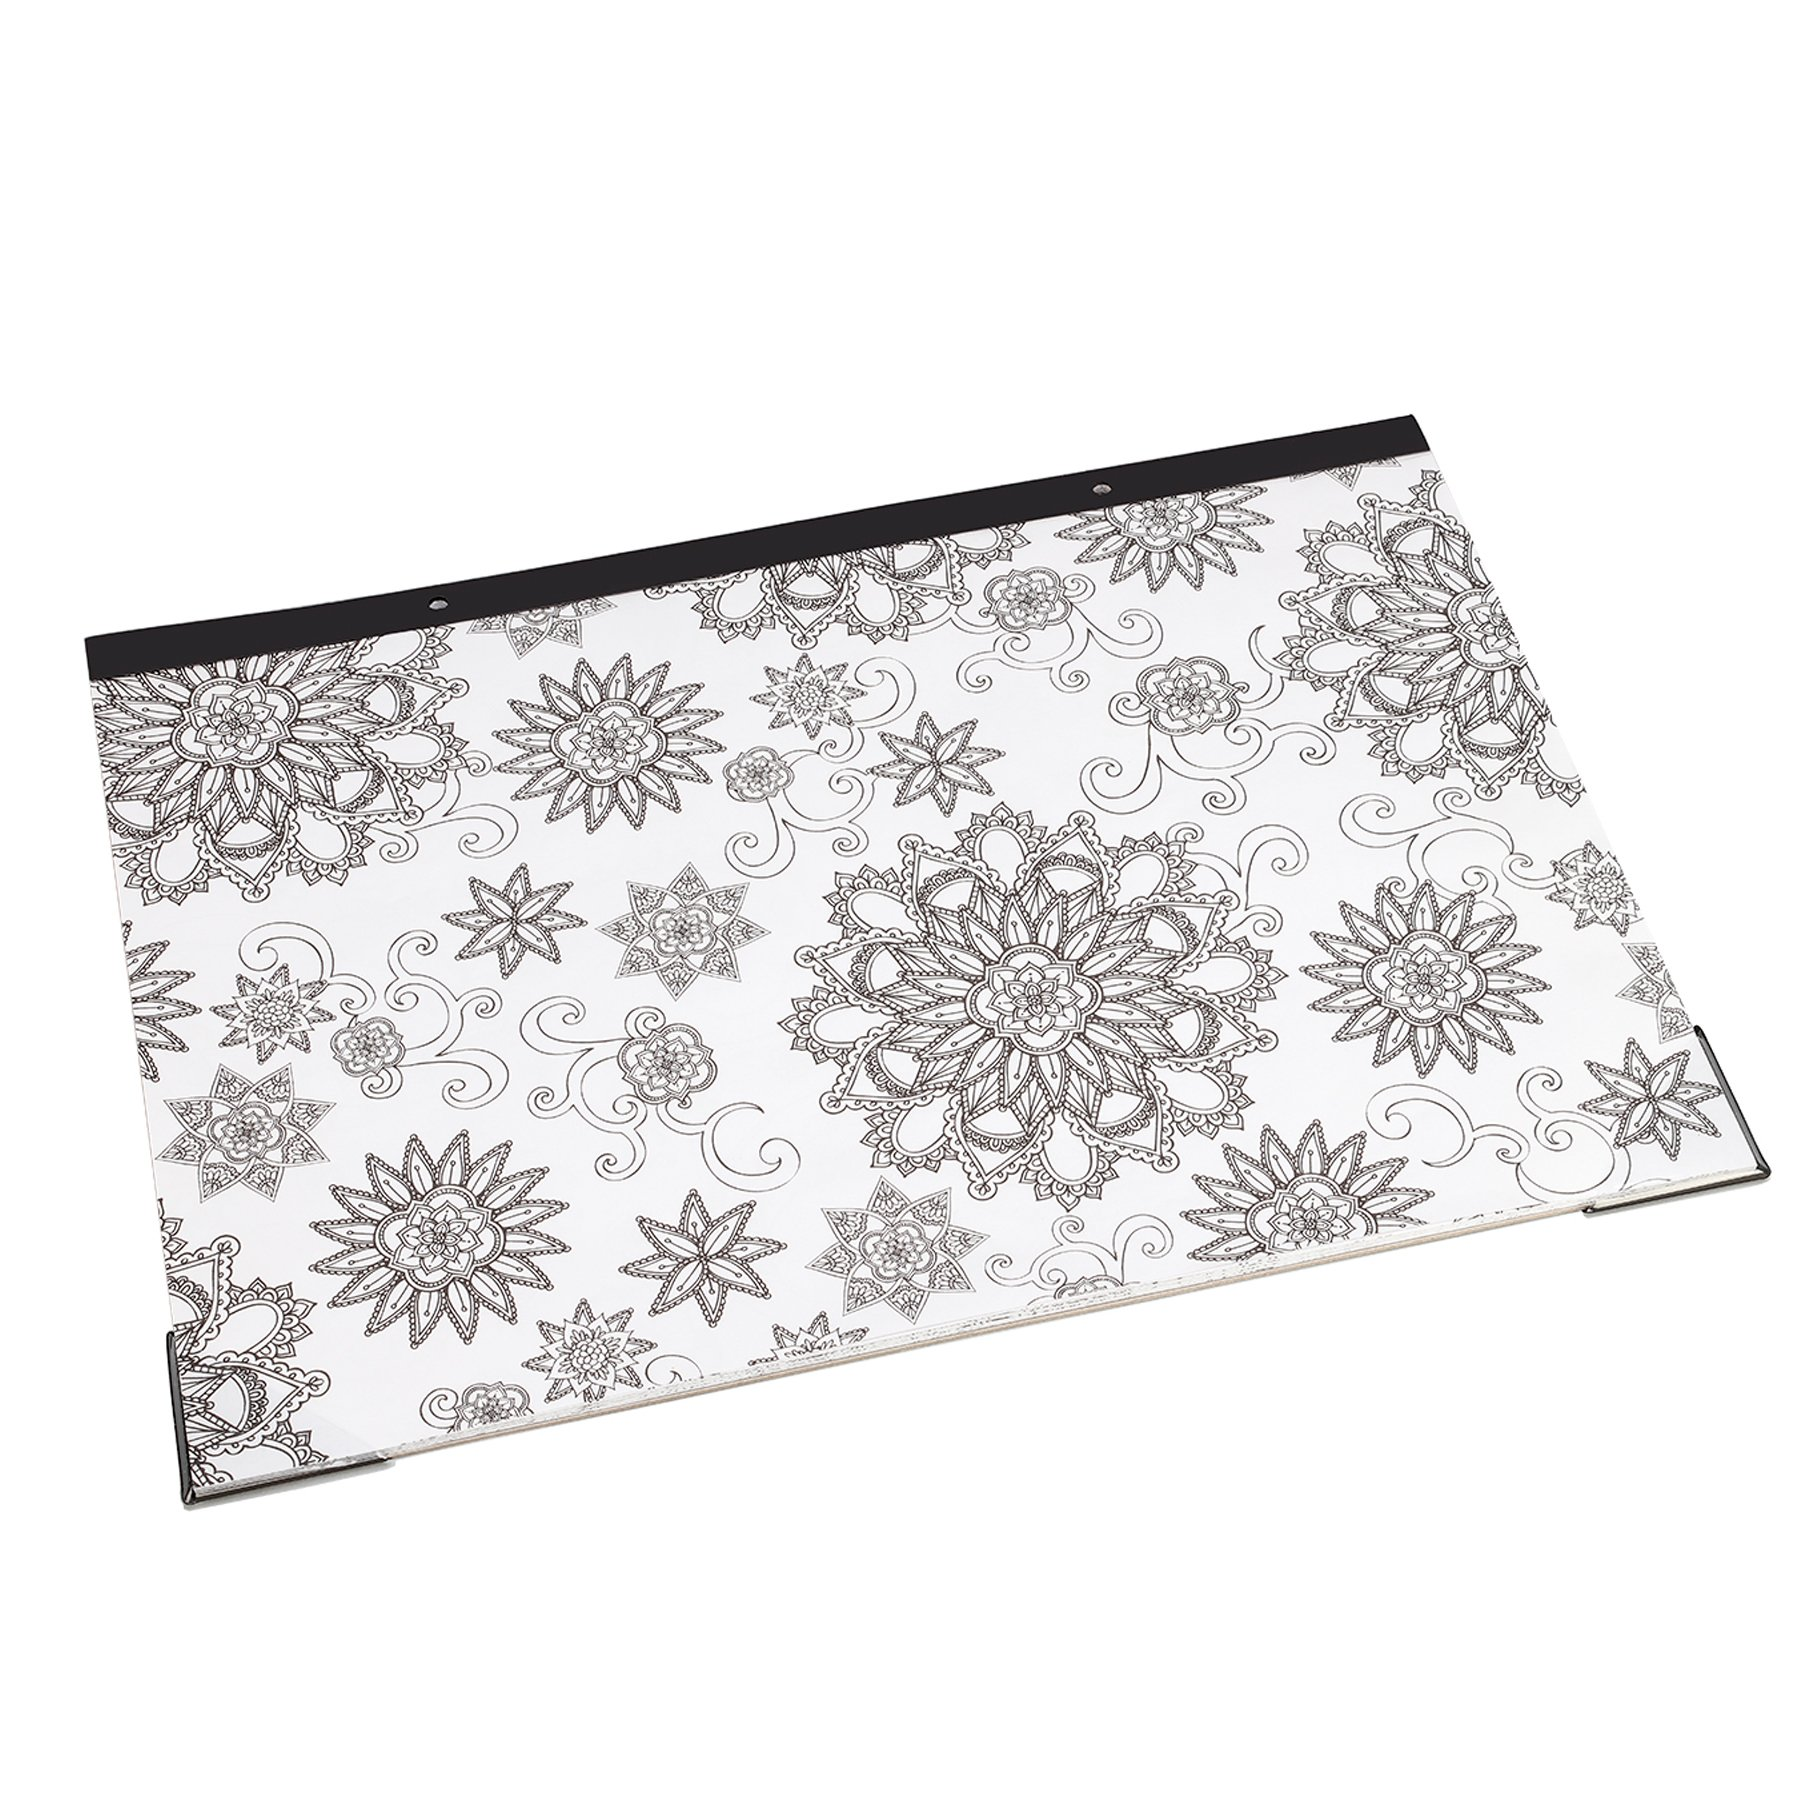 """Artistic 12"""" x 17"""" Coloring Desk Pad 